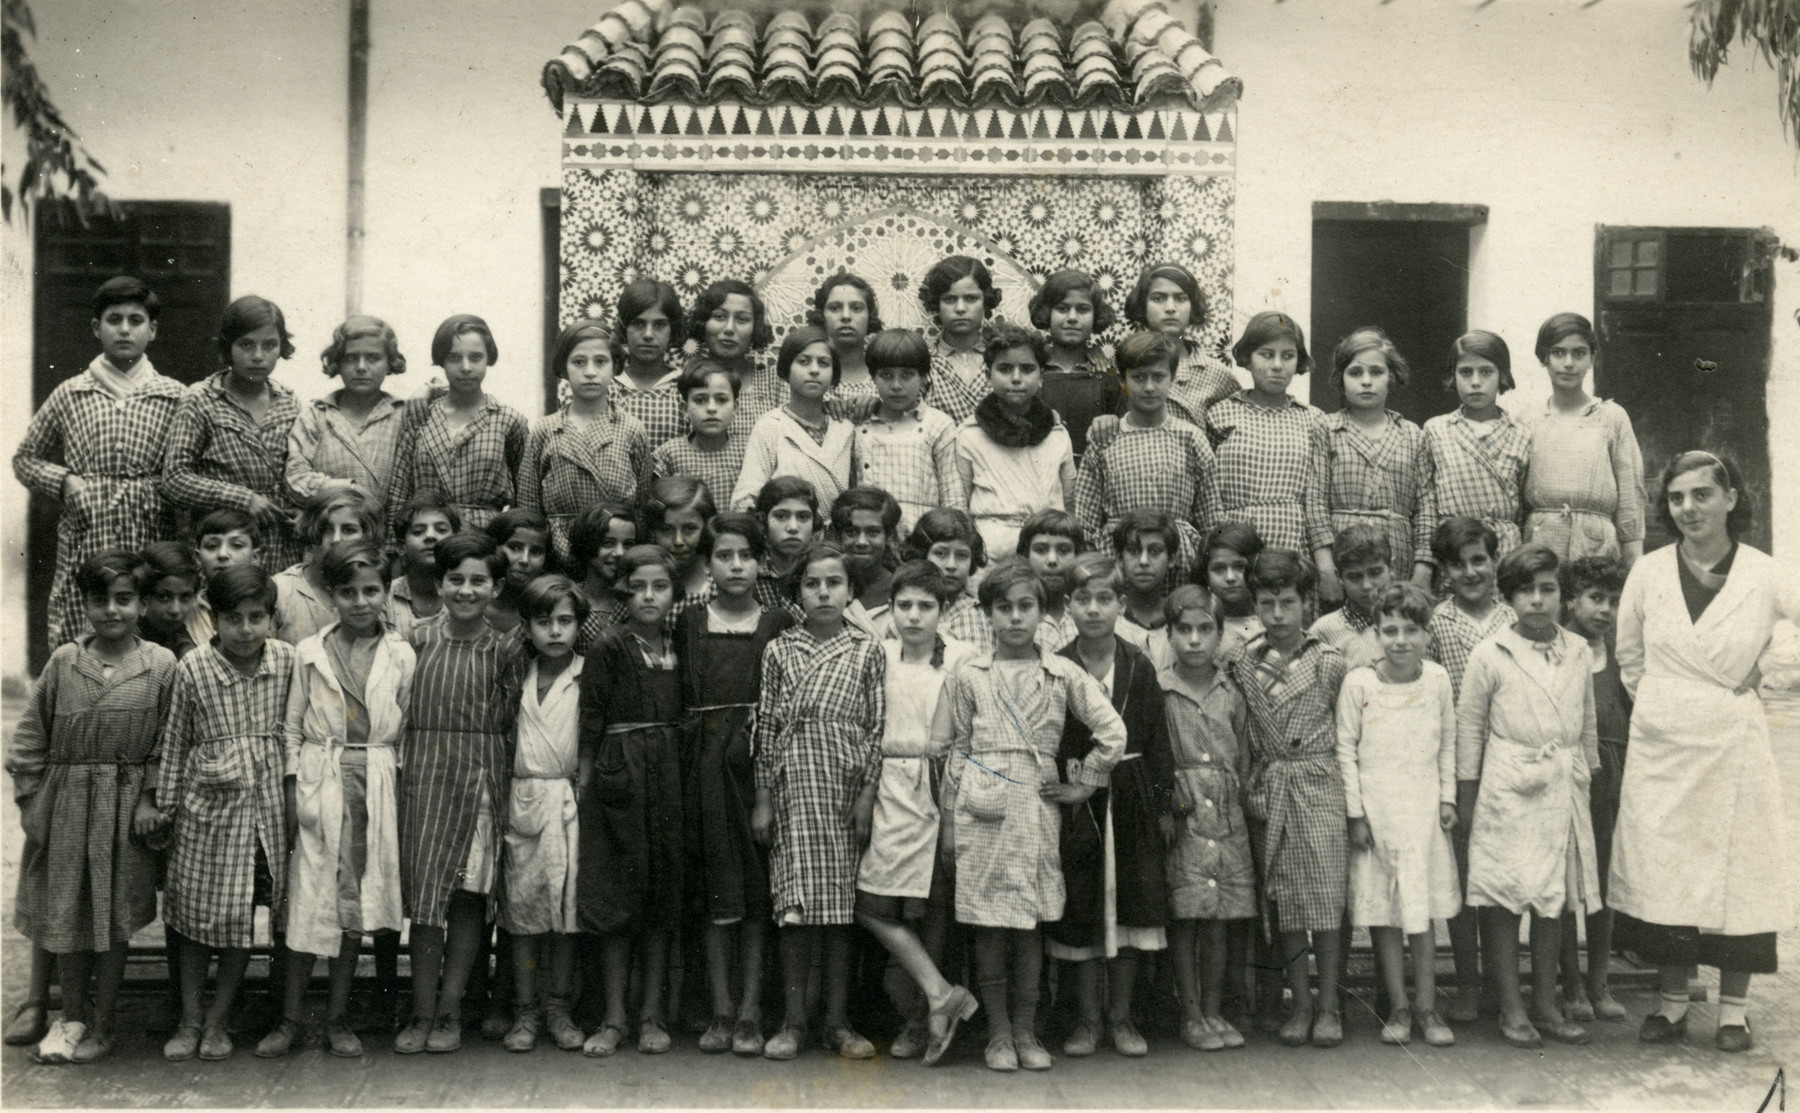 Laurette Cohen (front row, in the far right) poses with her students at an Alliance Israelite School in Morocco.